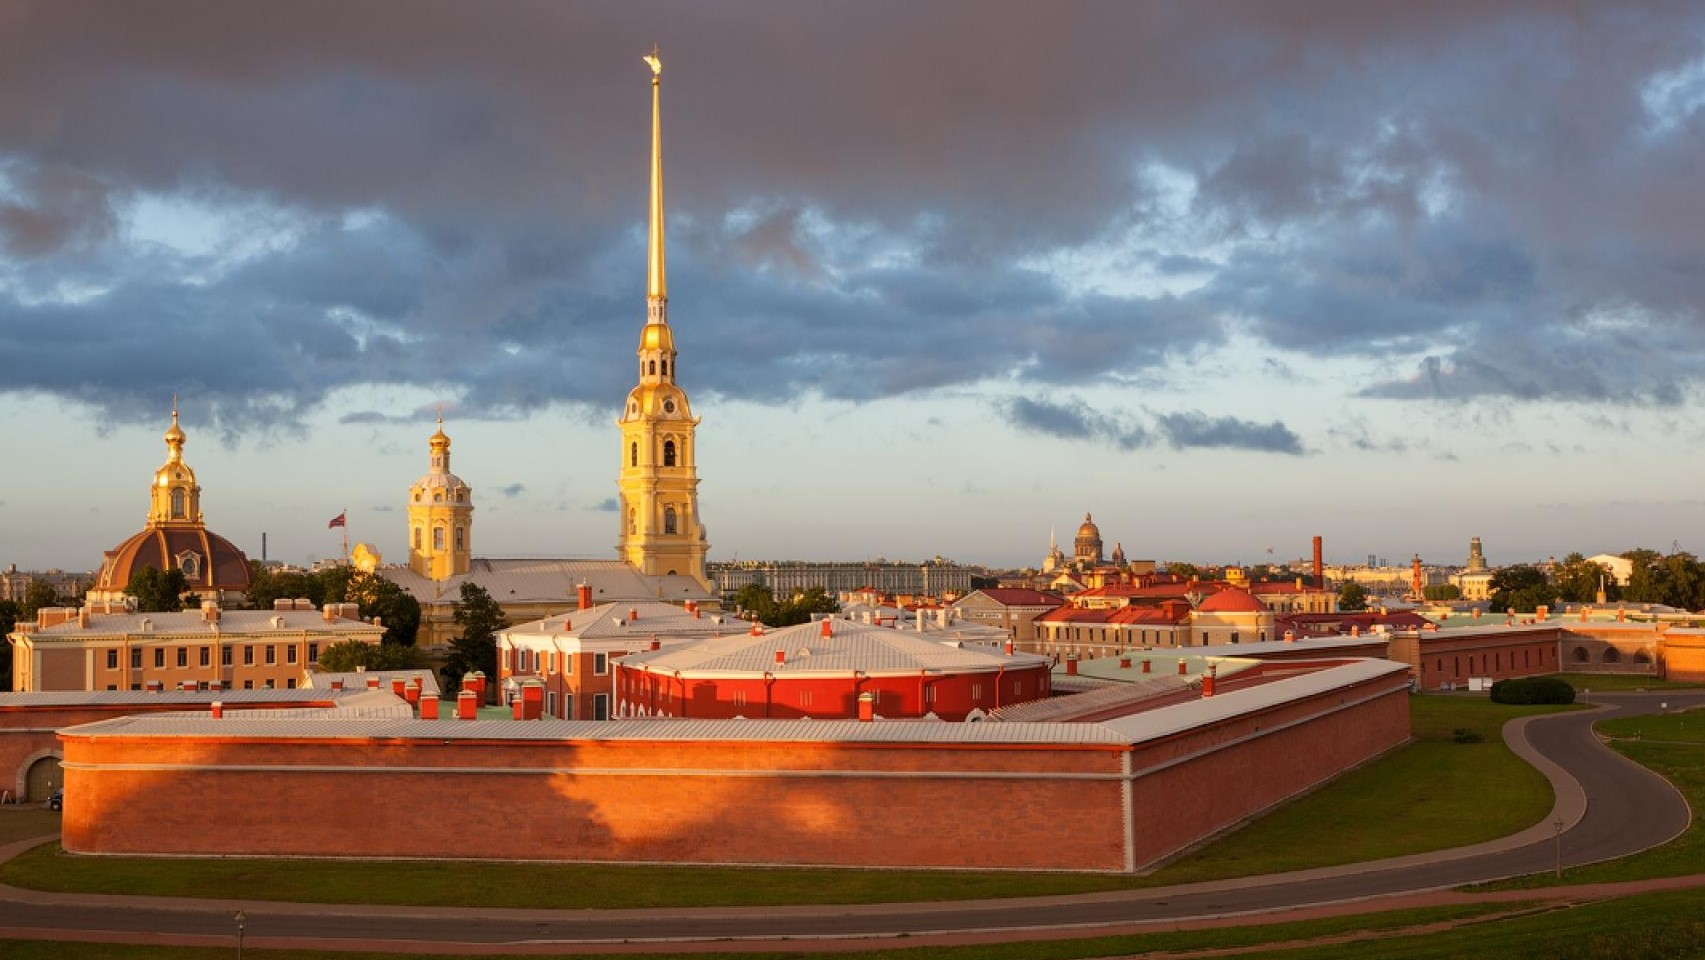 St. Petersburg, Peter and Paul Fortress